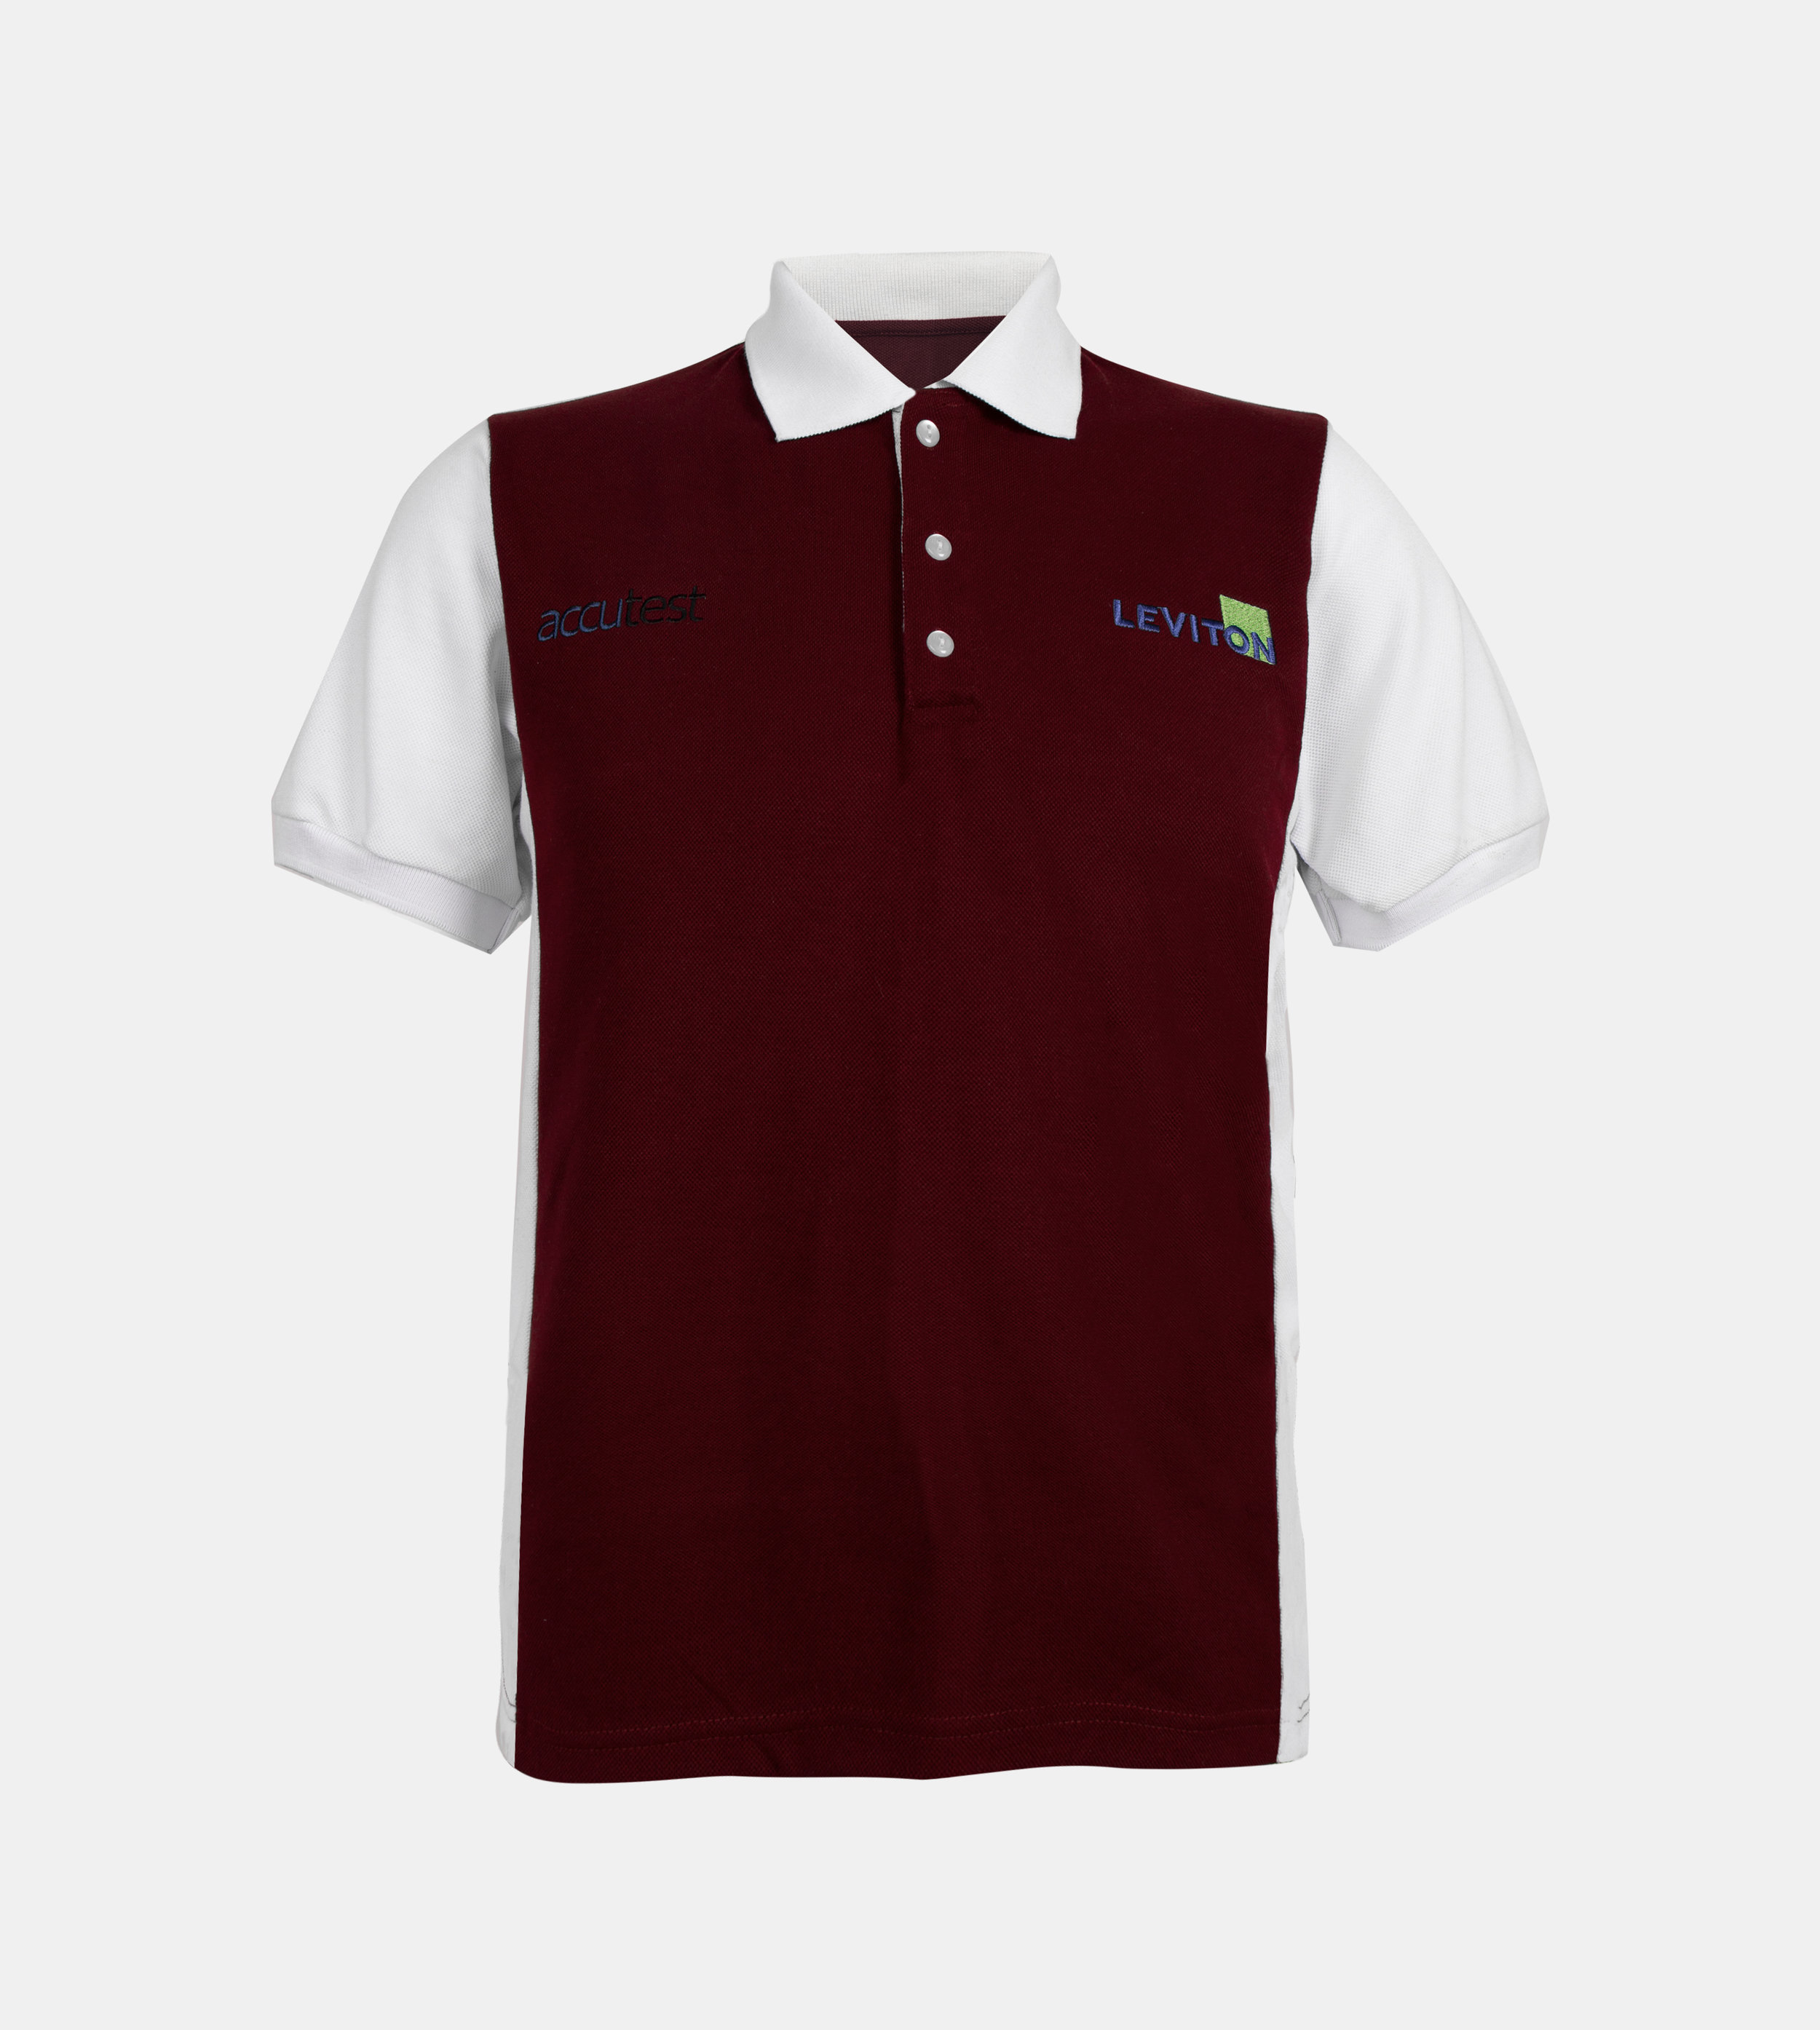 Tailored Projects-Custom Shirt-Polo Shirt-Accutest.jpg